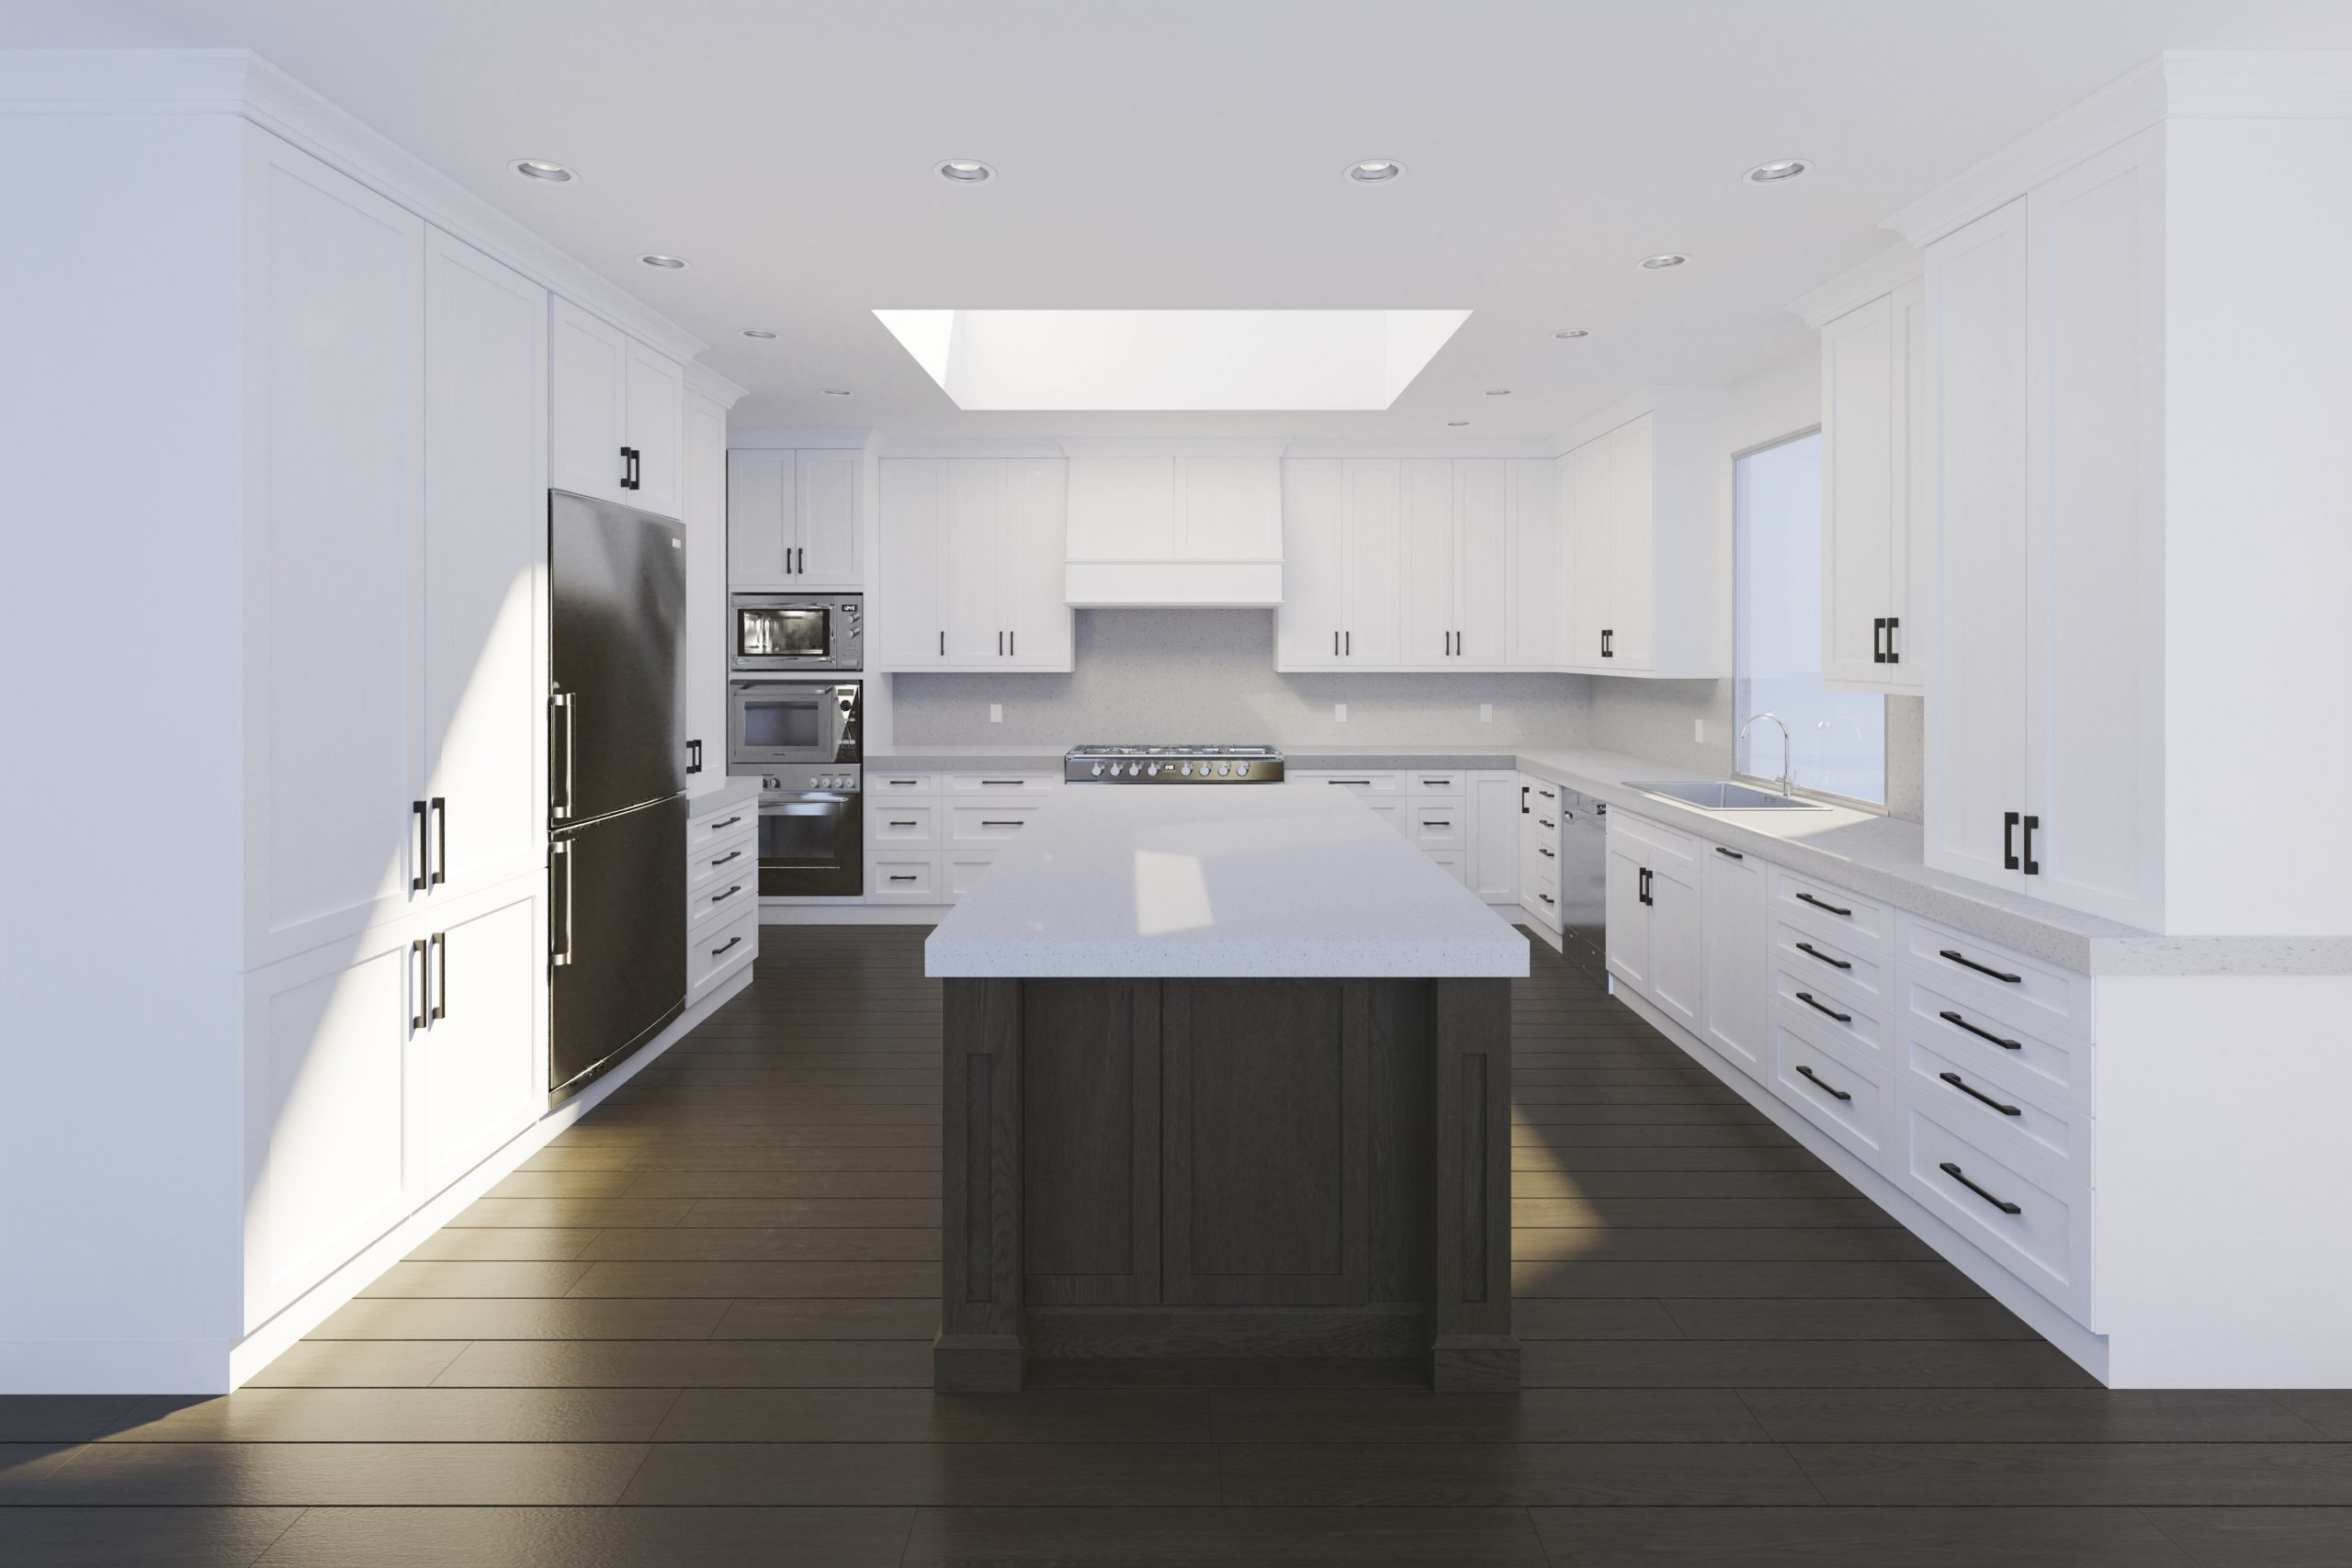 Kitchen rendered from floor plan and elevation drawings